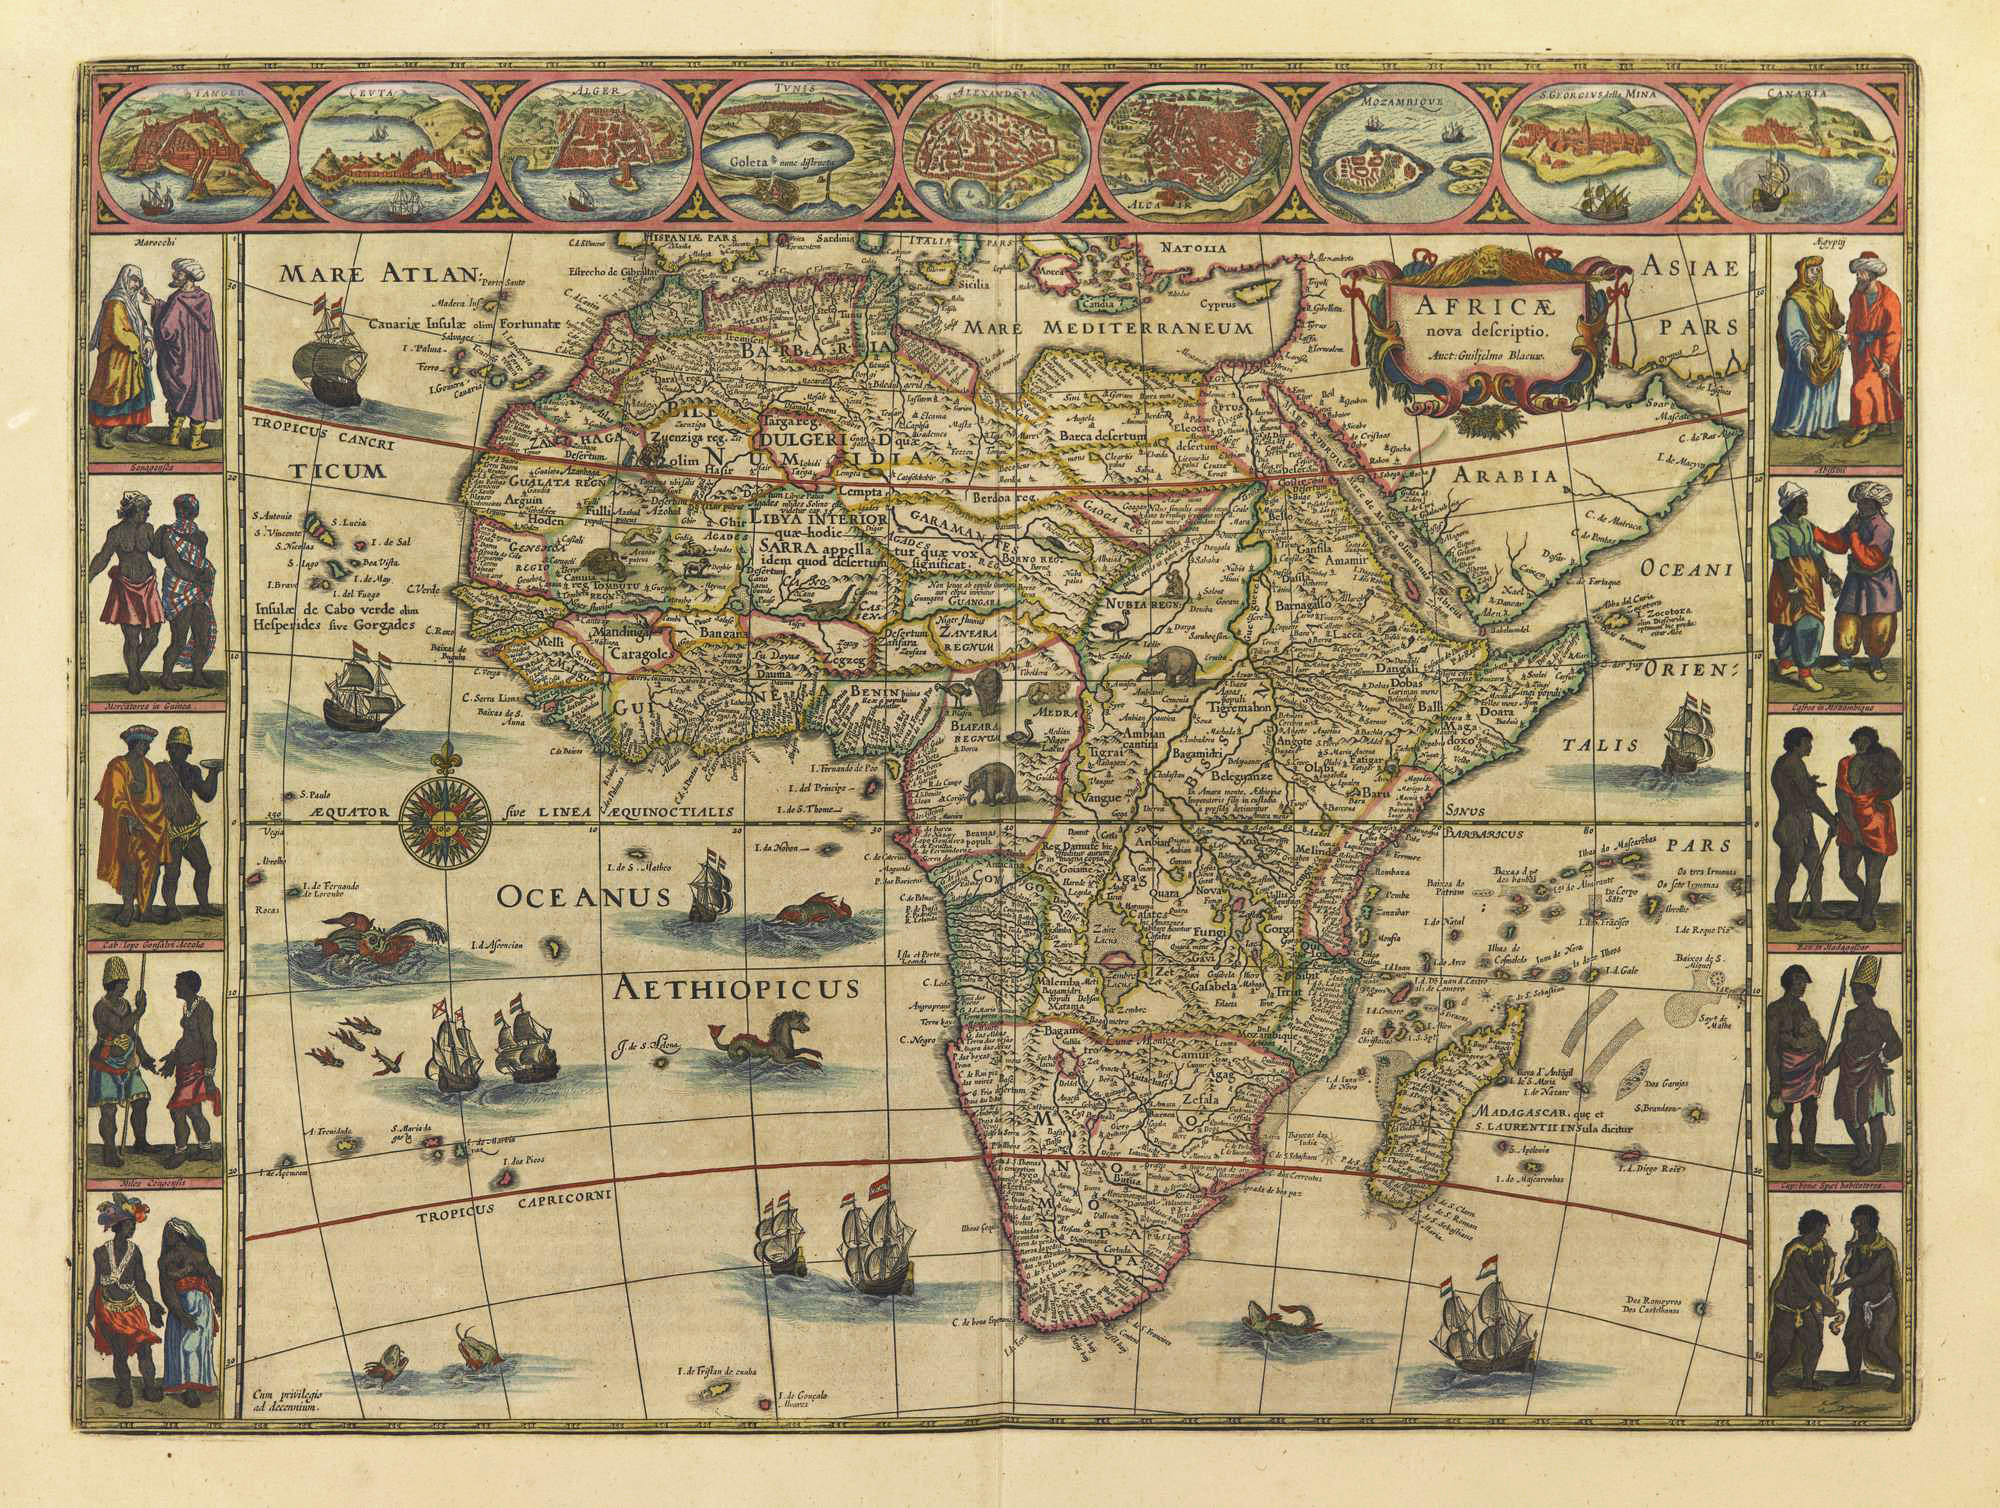 Africa. Joan Blaeu, Le grand atlas, vol. 10. Amsterdam, 1667. (Bell Library 1667 oBl)